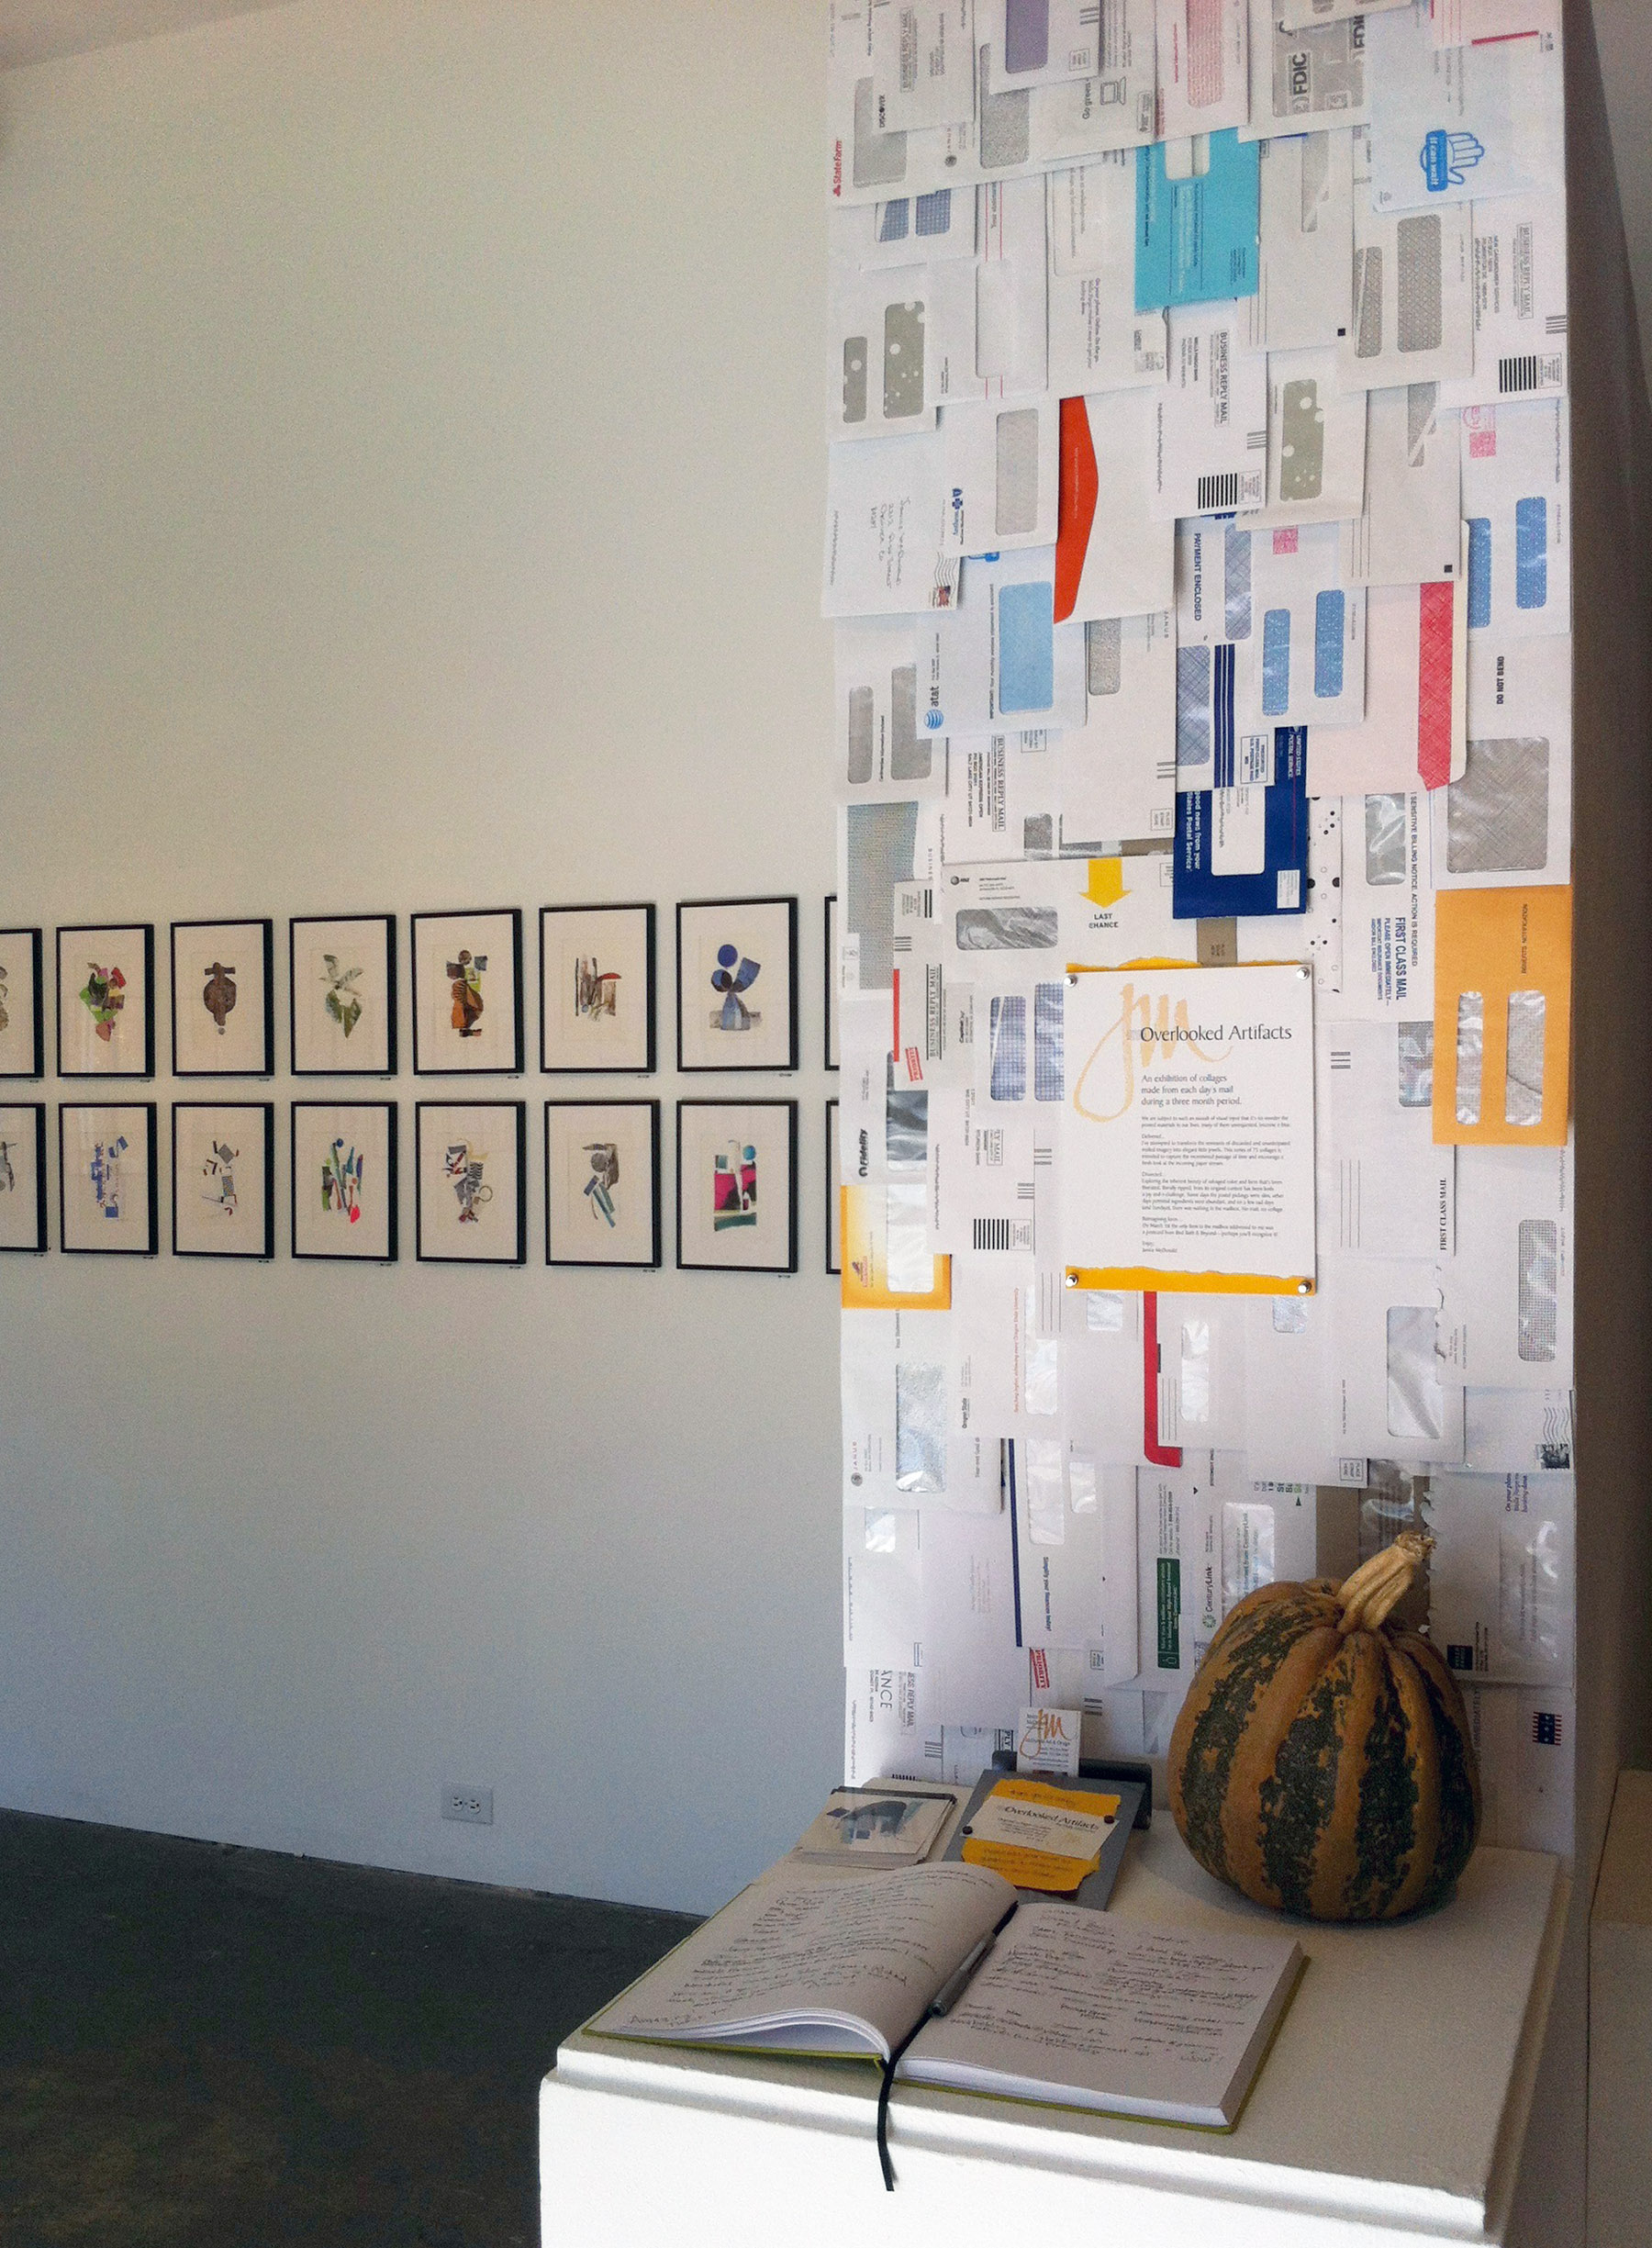 The wall of envelopes in context at Spark Gallery.